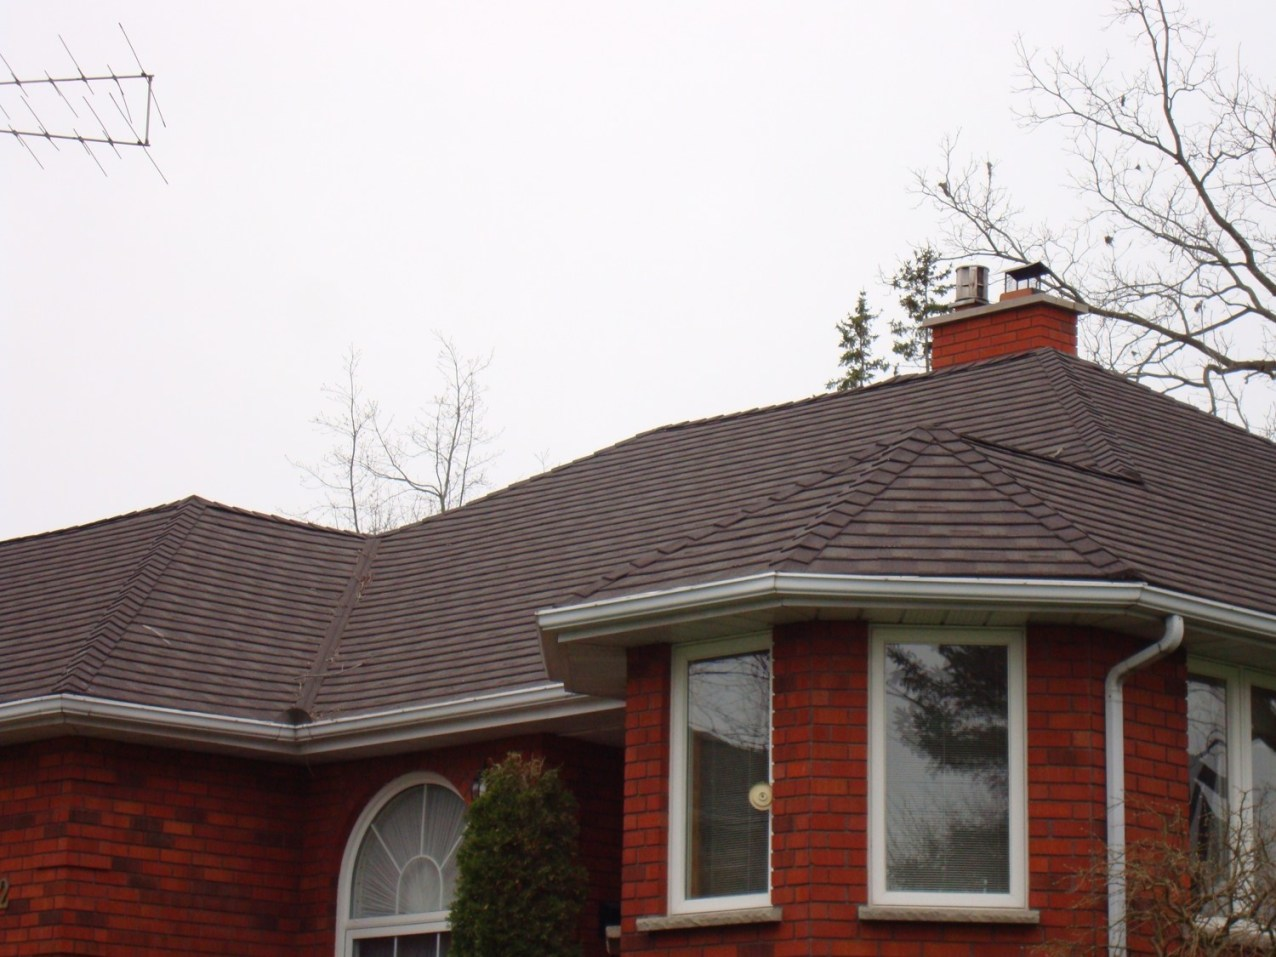 Timberwood coloured Granite Ridge metal shingle roof installed by Metal Roof Outlet